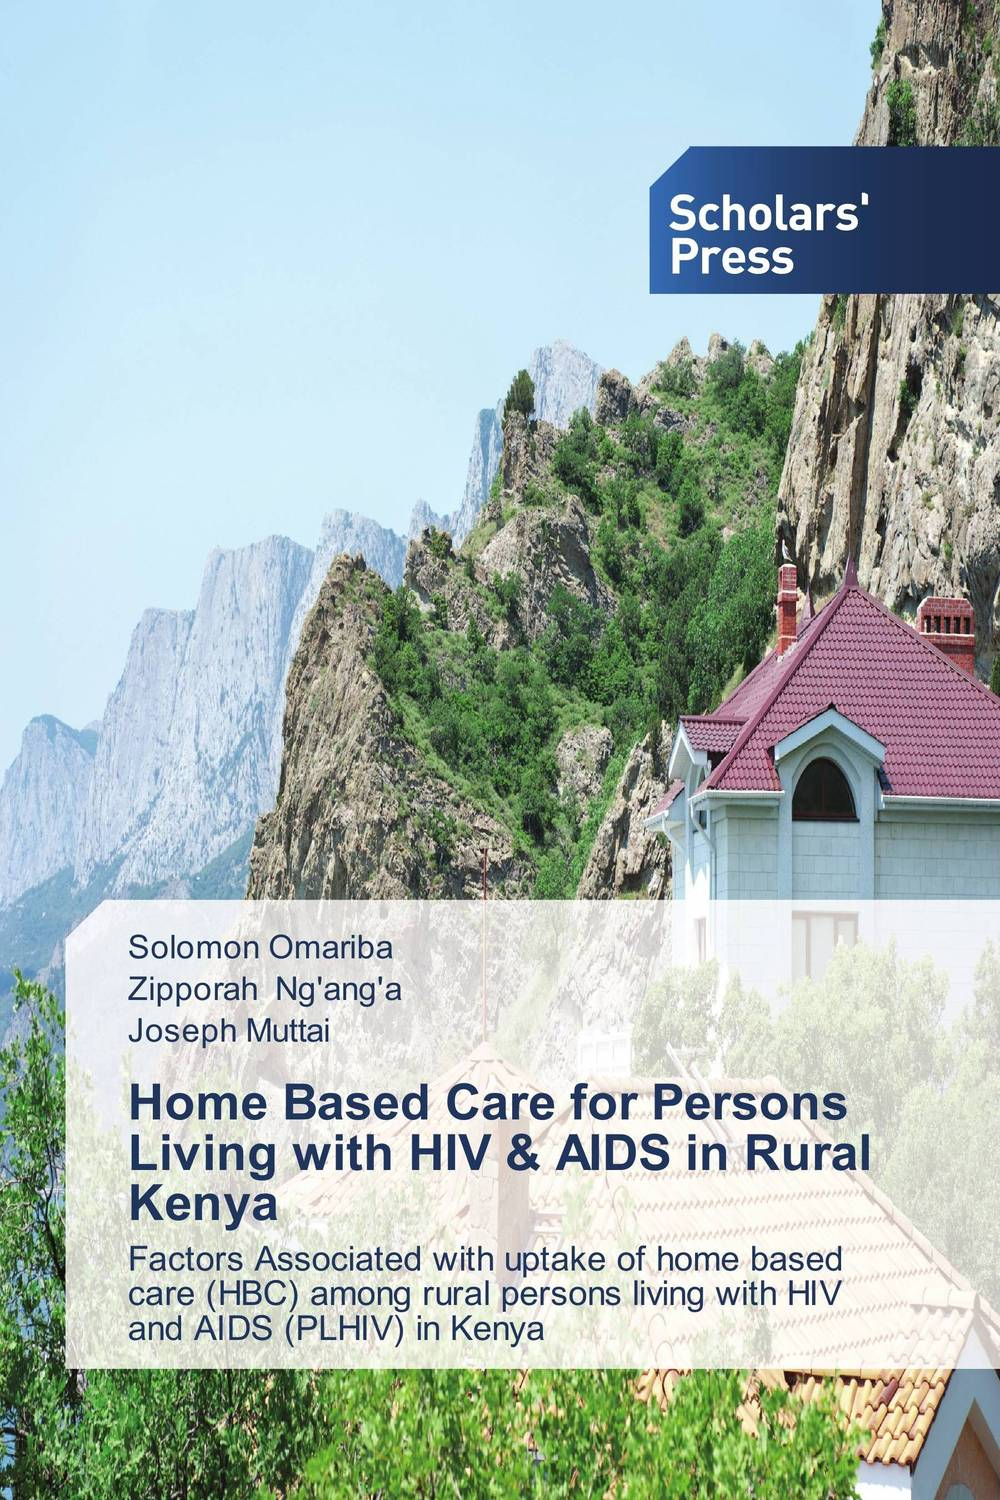 Home Based Care for Persons Living with HIV & AIDS in Rural Kenya